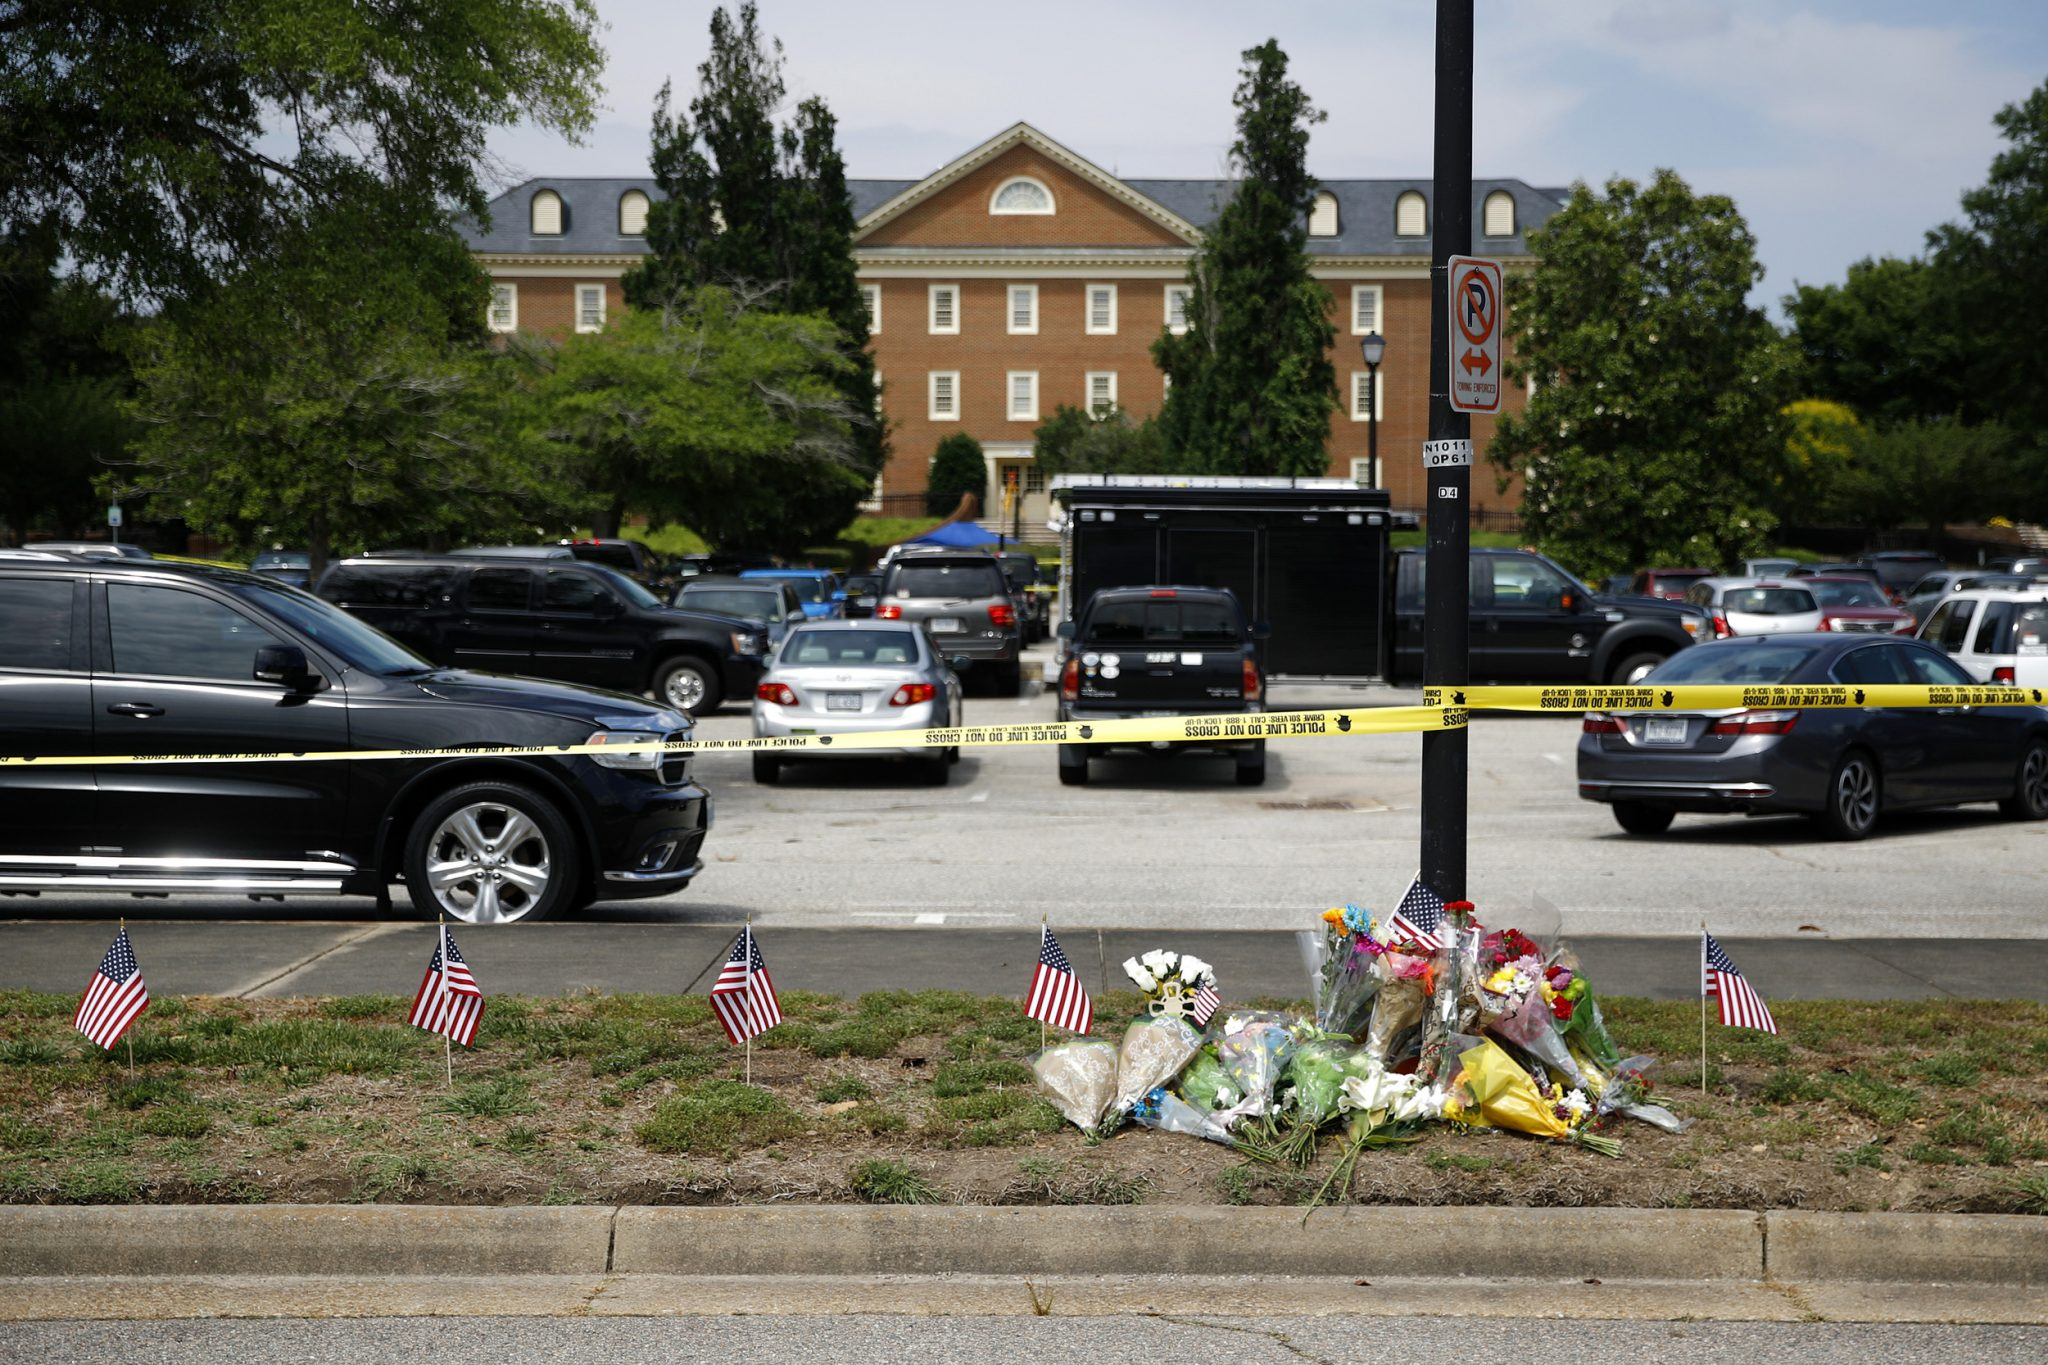 Mass shootings in the workplace are rare and puzzling